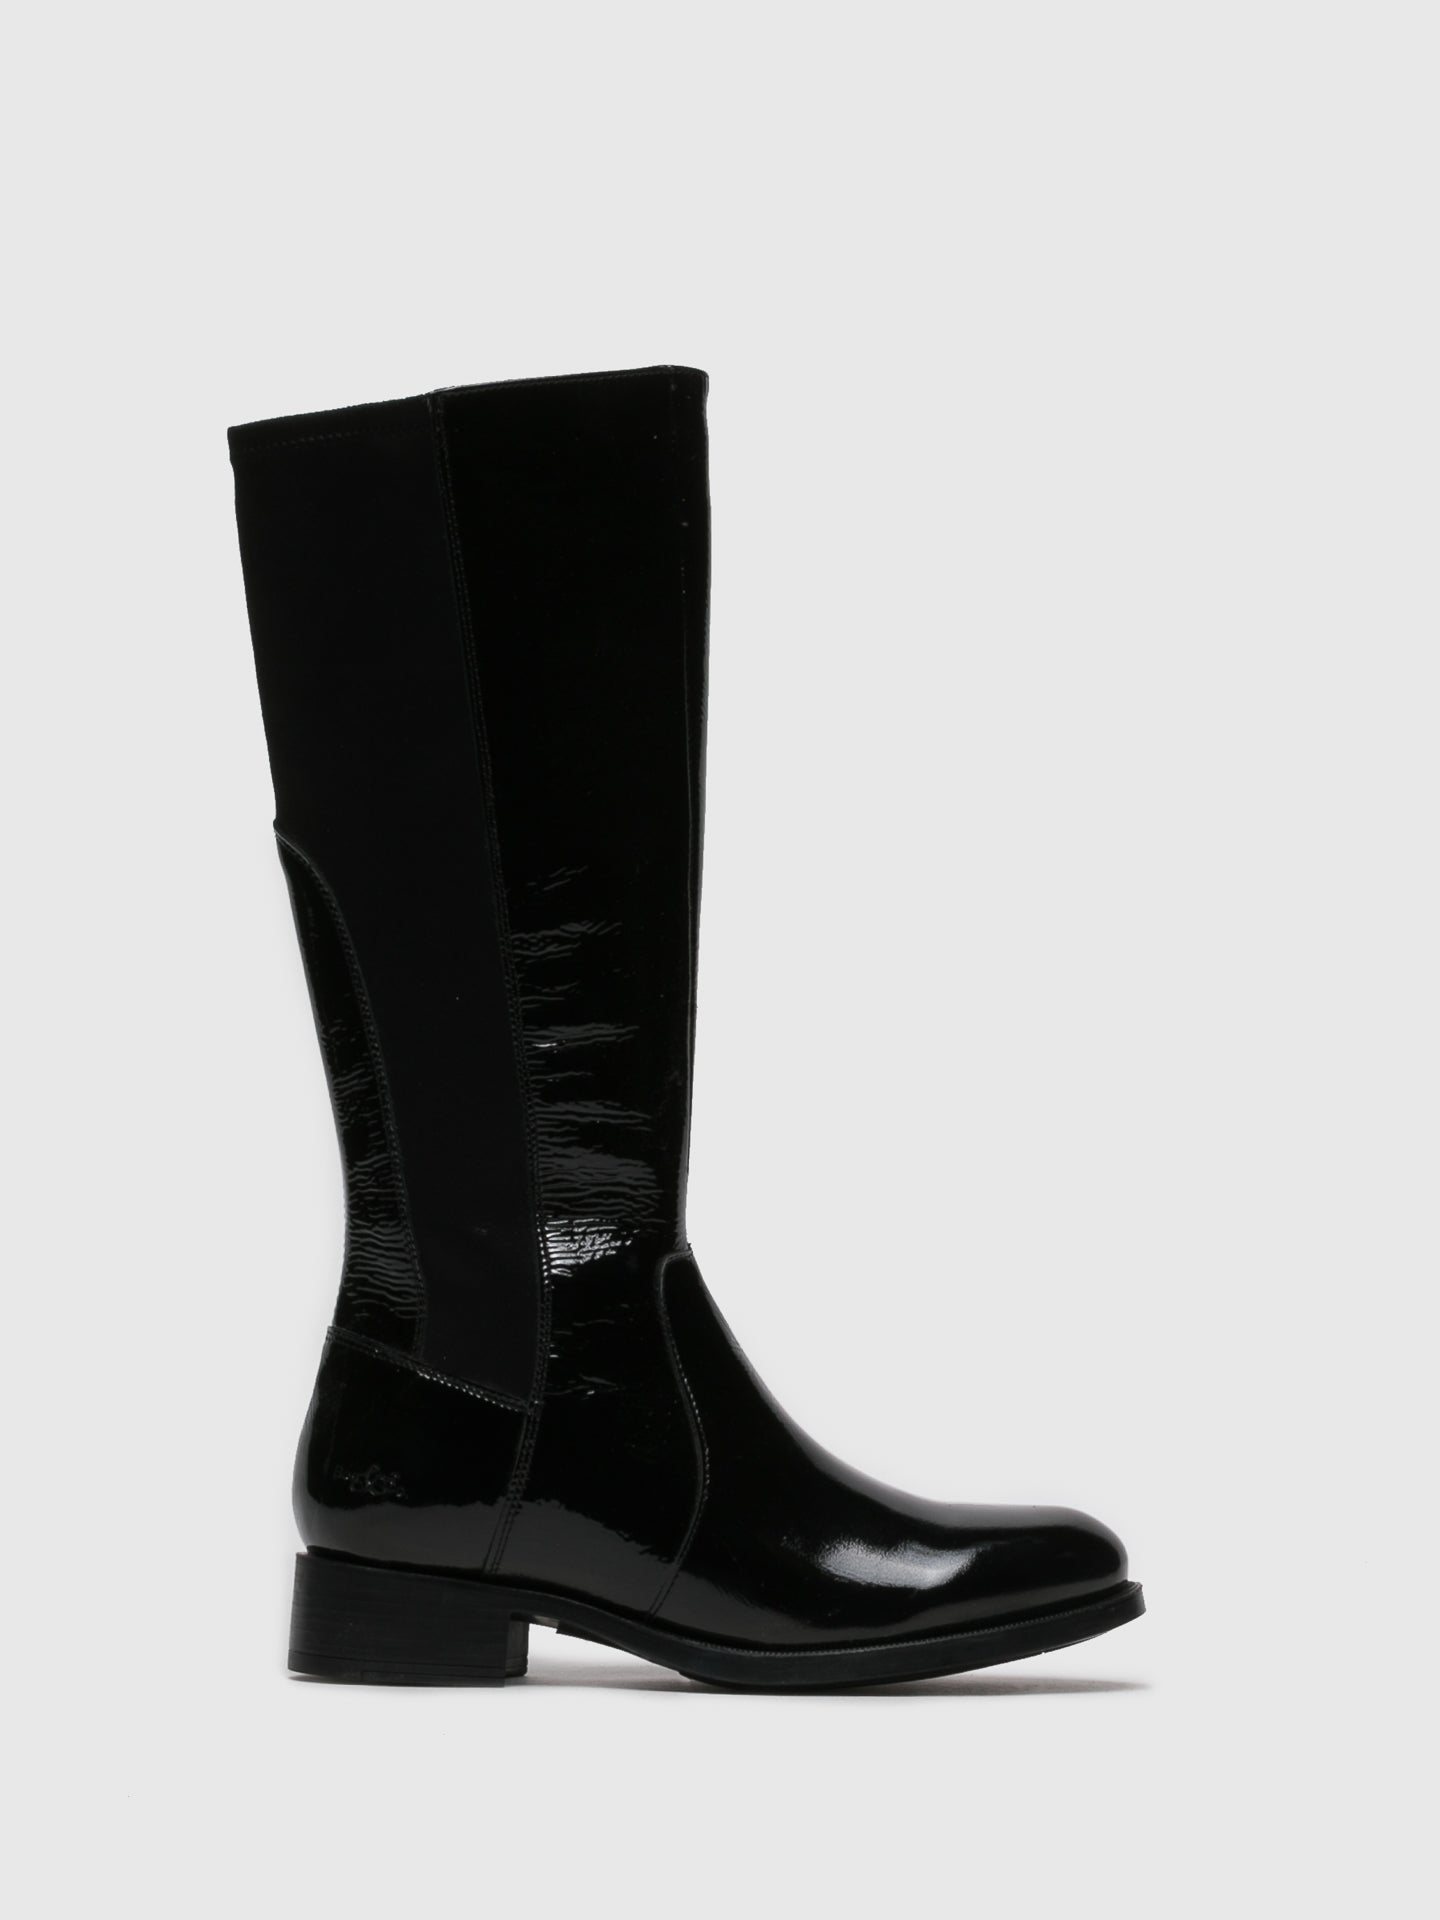 Bos&Co Gloss Black Knee-High Boots